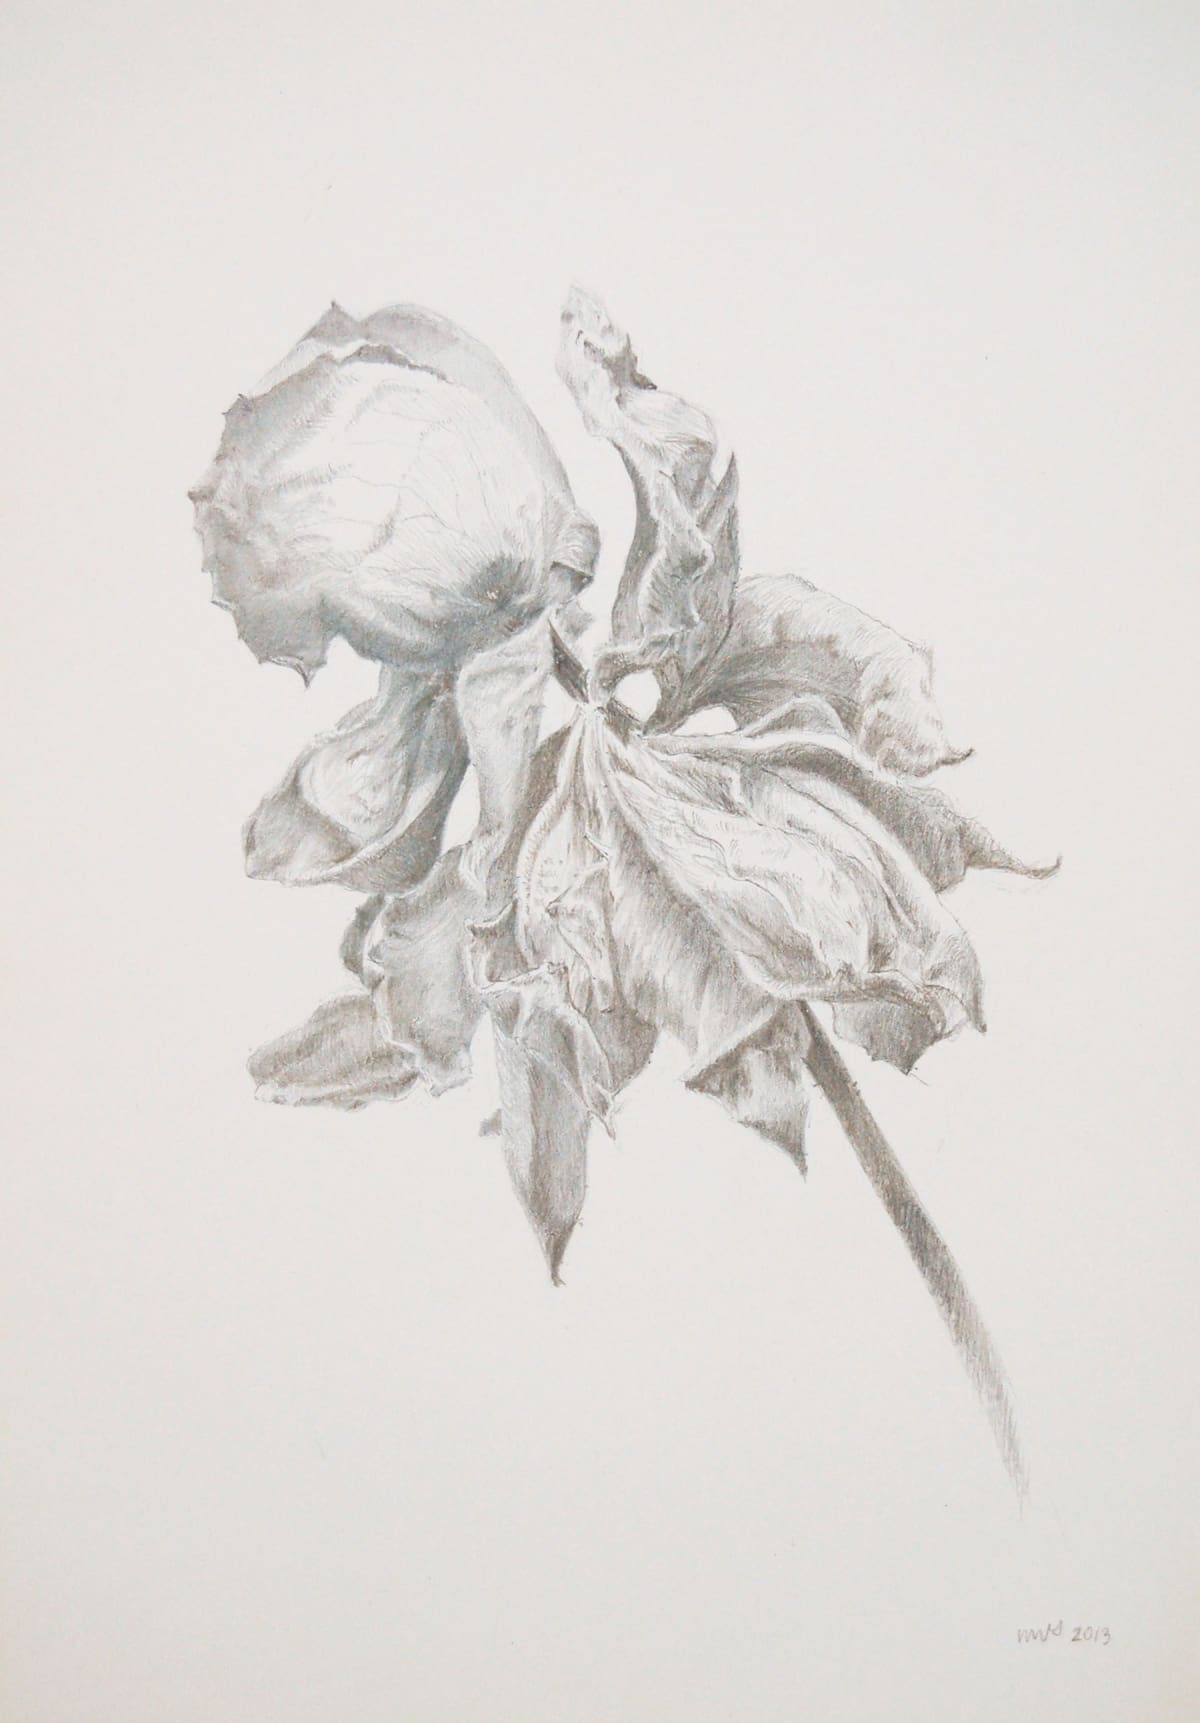 Marjorie Williams-Smith Rose Motion Right, 2013 Silverpoint 5 3/8 x 3 15/16